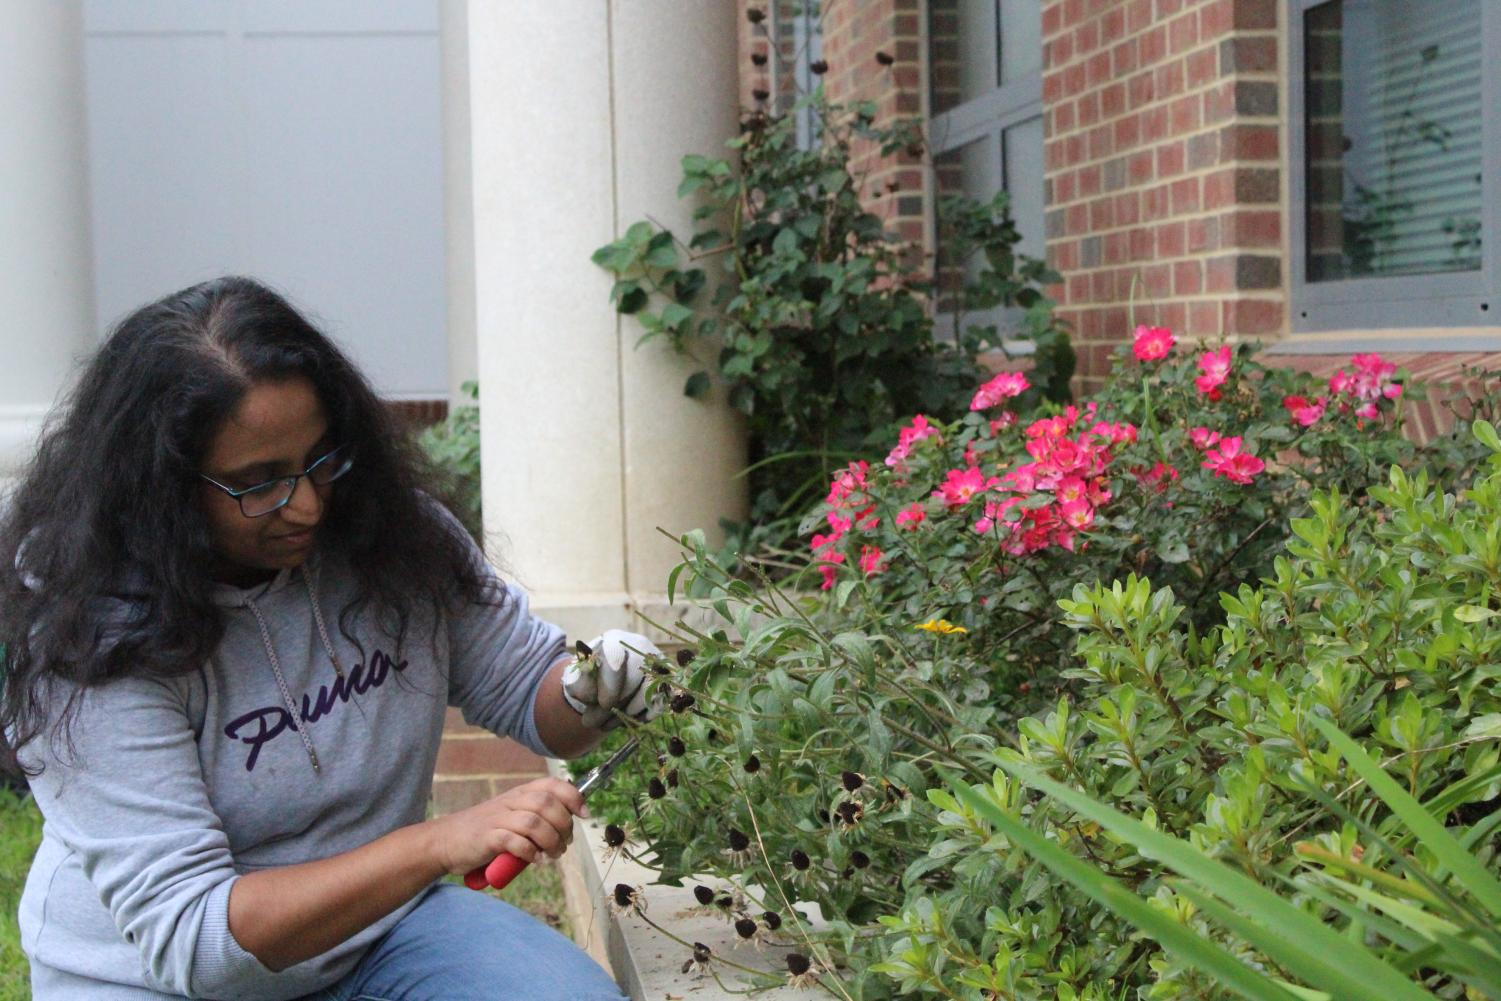 During Cultivators of the Earth's weekly meeting, senior Gopika Pillai uses a plier to cut the tips of dead flowers among the rose pink garden.